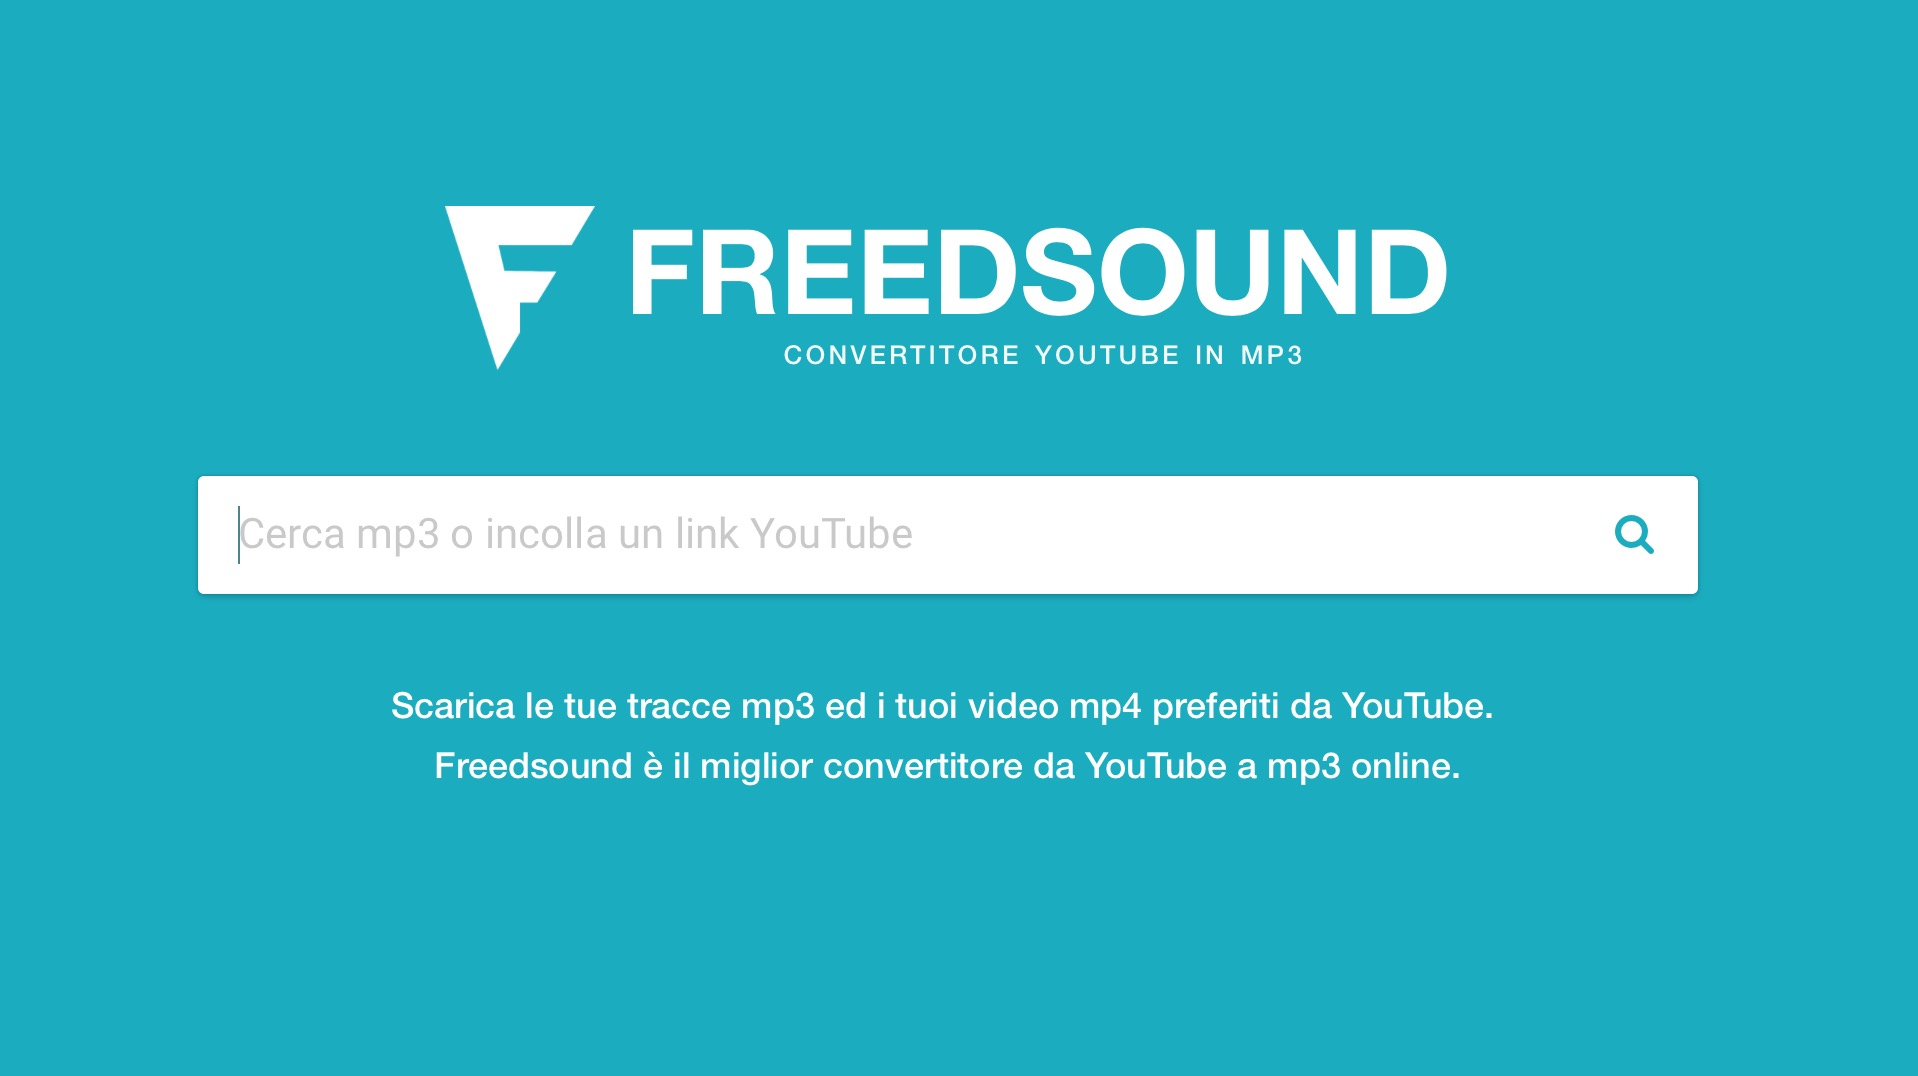 canzoni gratis freesound